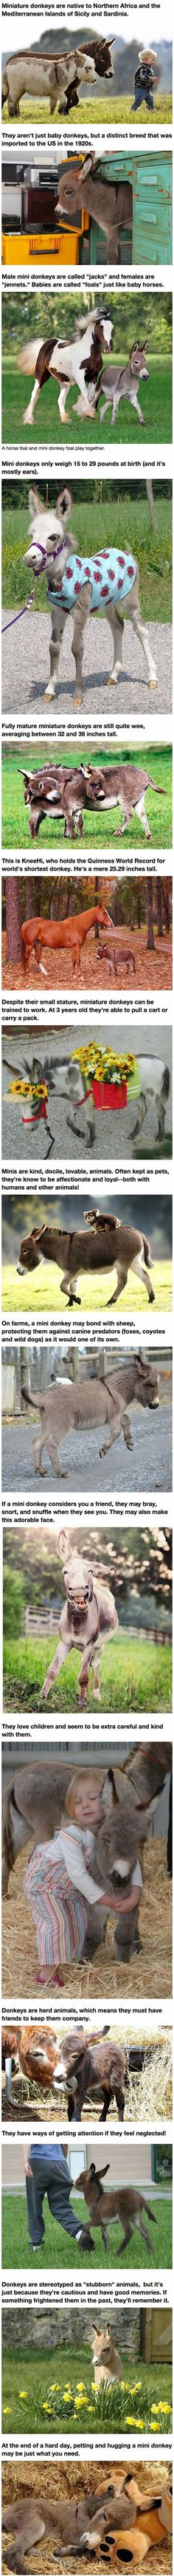 Mini Donkeys Are The Perfect Pets http://ibeebz.com